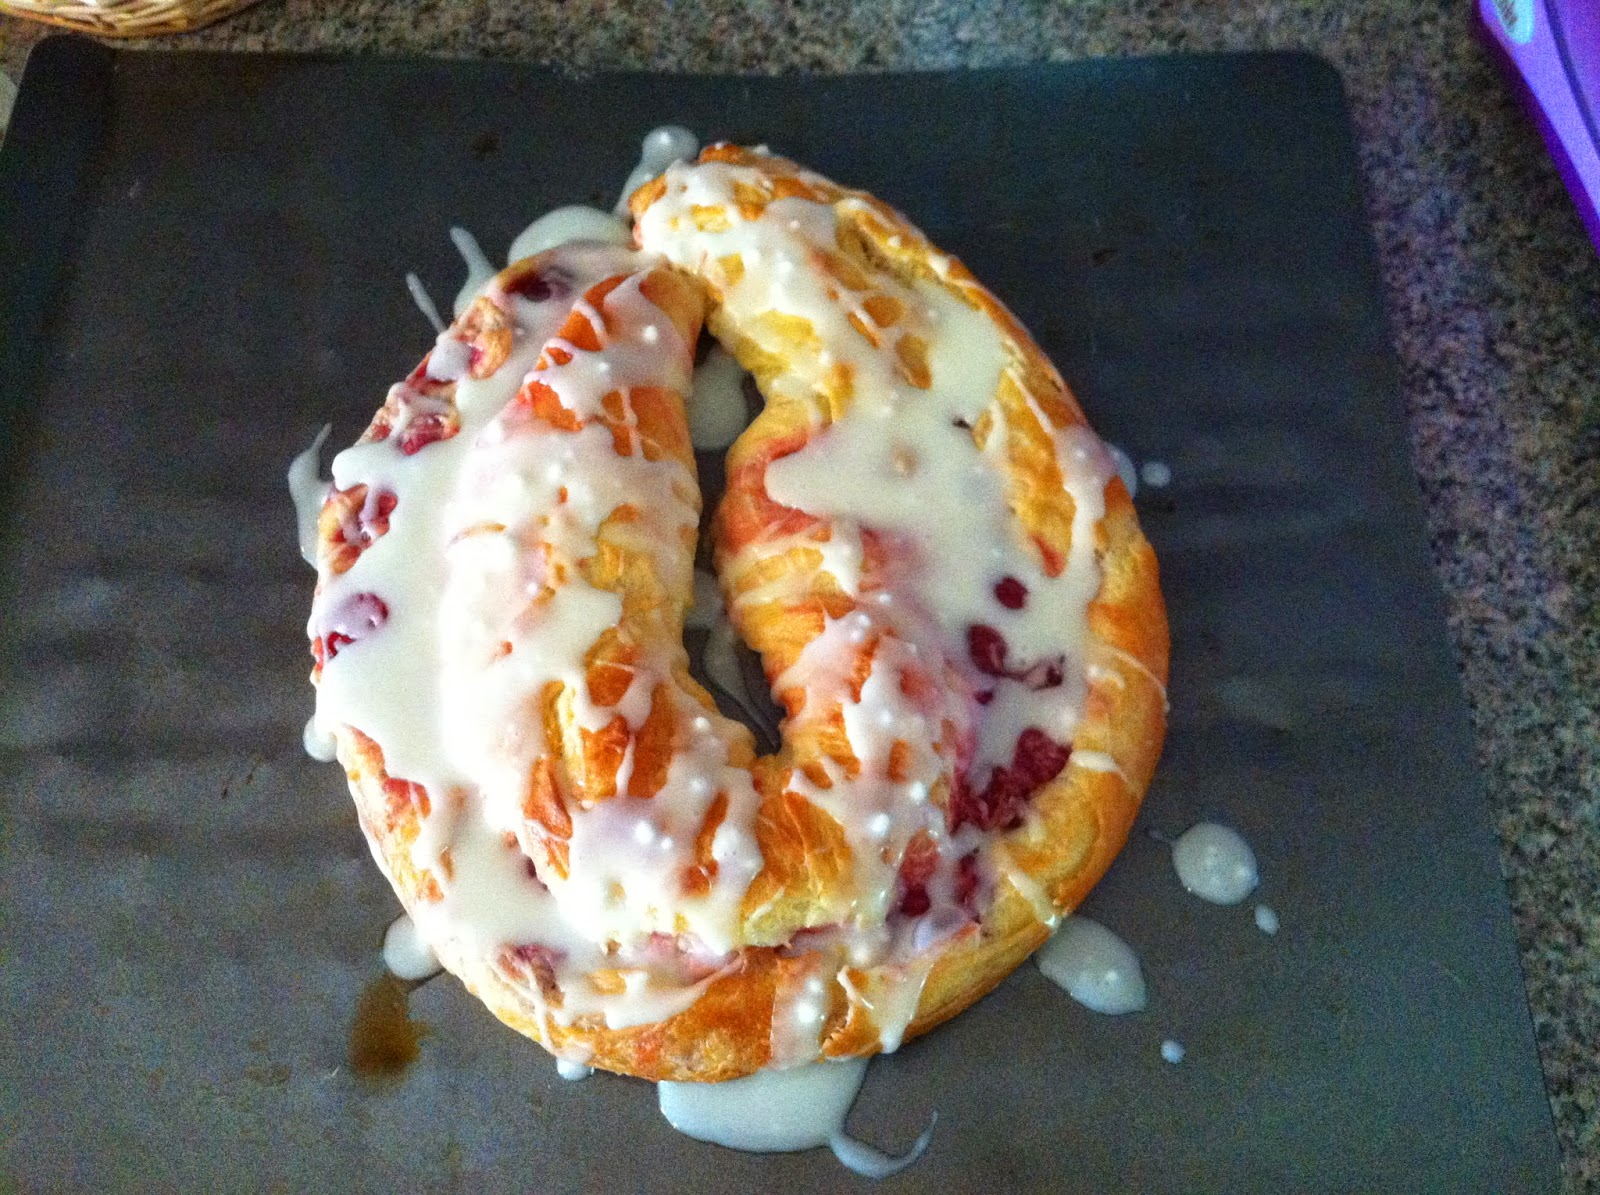 pastry cherry kringle Danish delicious breakfast 3 days recipe